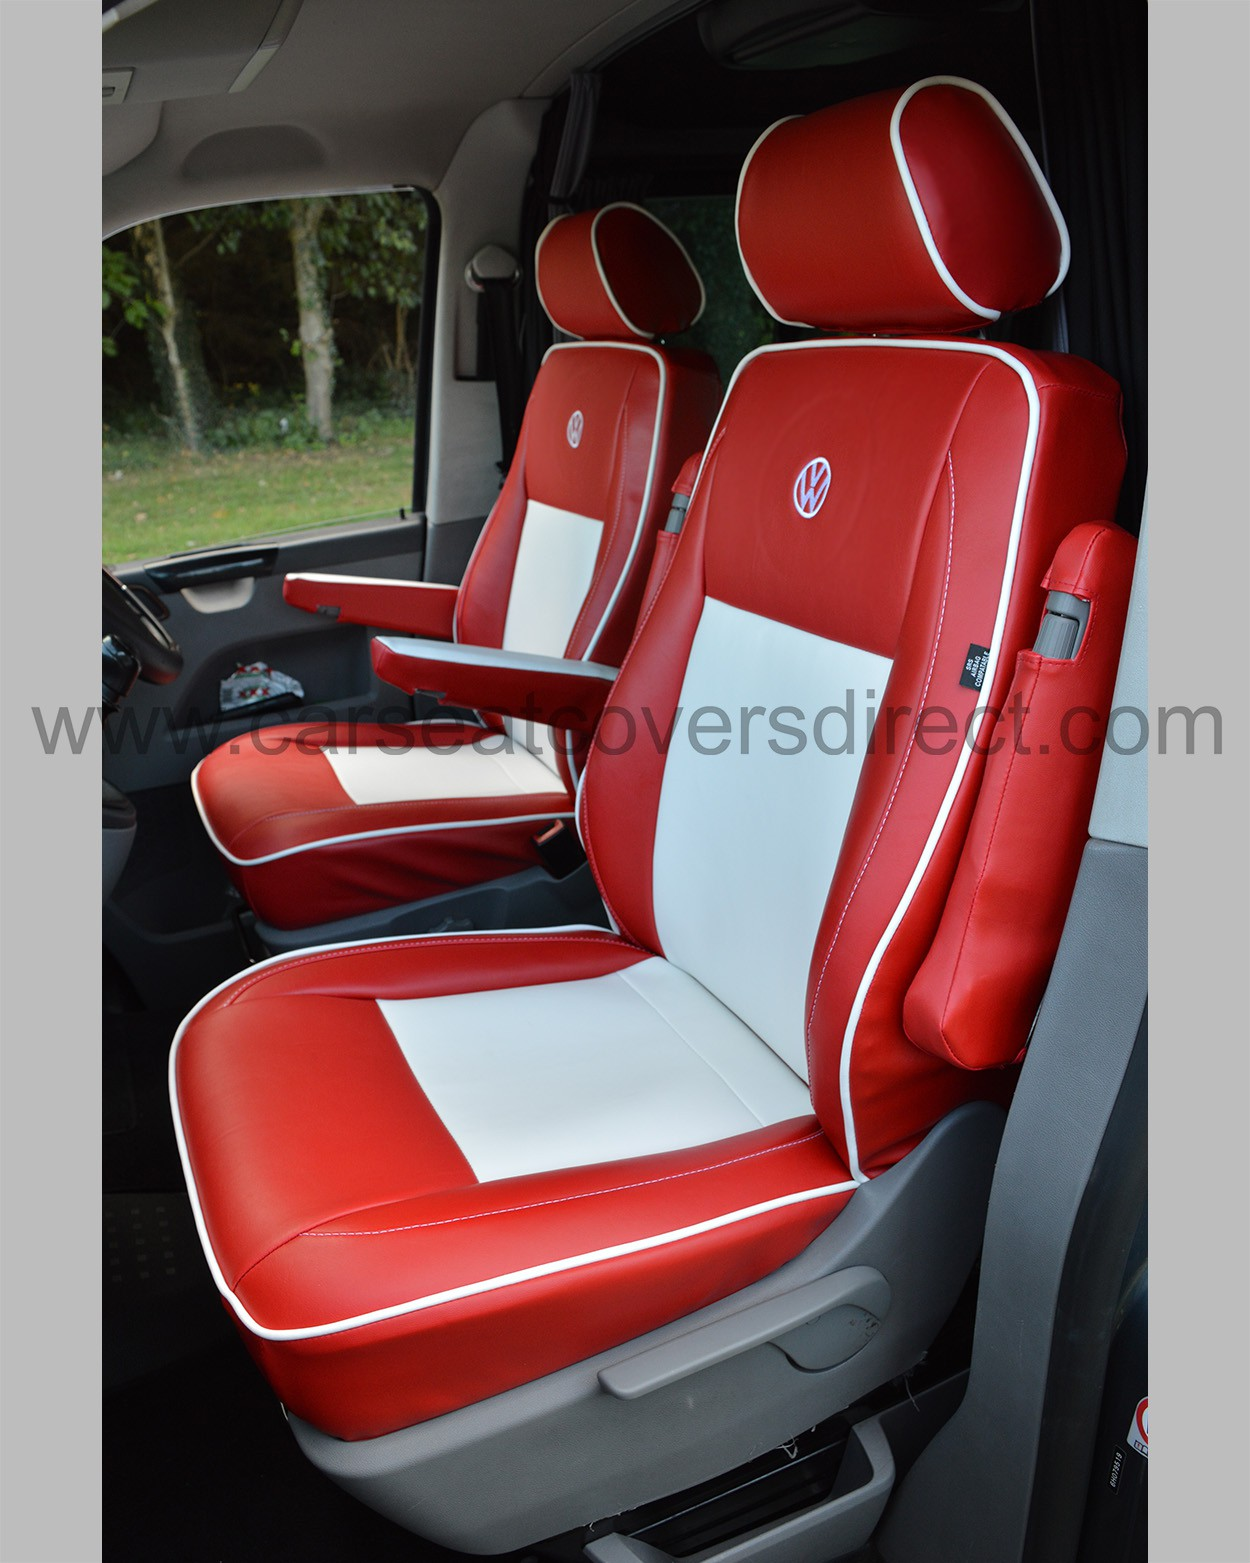 vw t5 seat covers red white leatherette car seat covers direct tailored to your choice. Black Bedroom Furniture Sets. Home Design Ideas